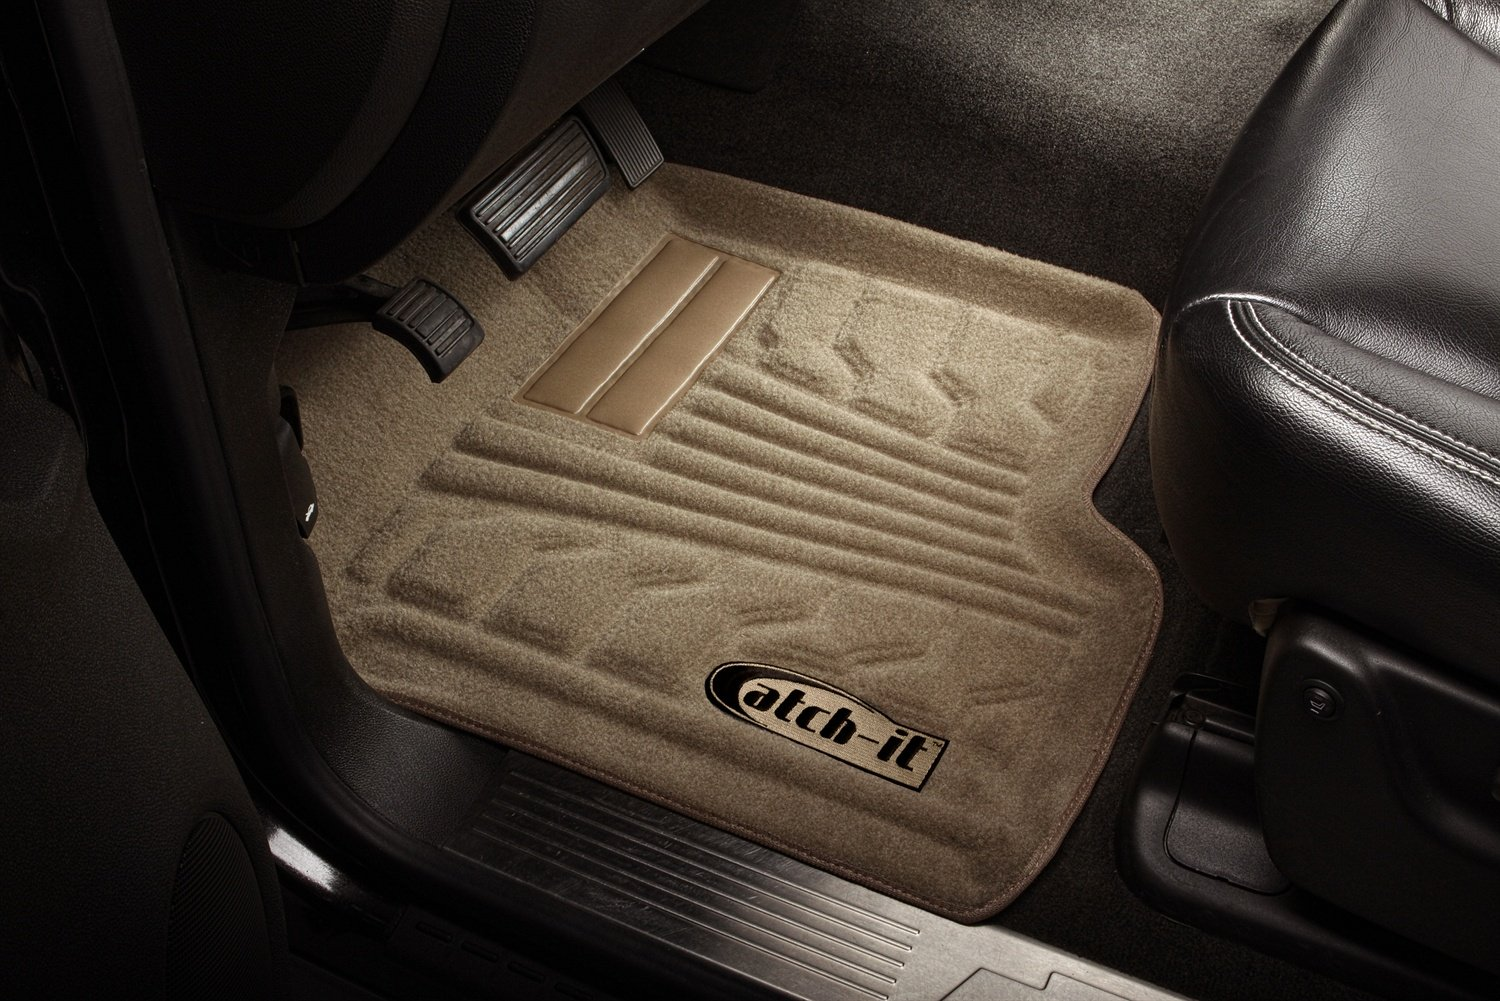 2008 Passenger /& Rear Floor GGBAILEY D4418A-S1A-CH-BR Custom Fit Car Mats for 2004 2009 Toyota Prius Brown Driver 2006 2007 2005